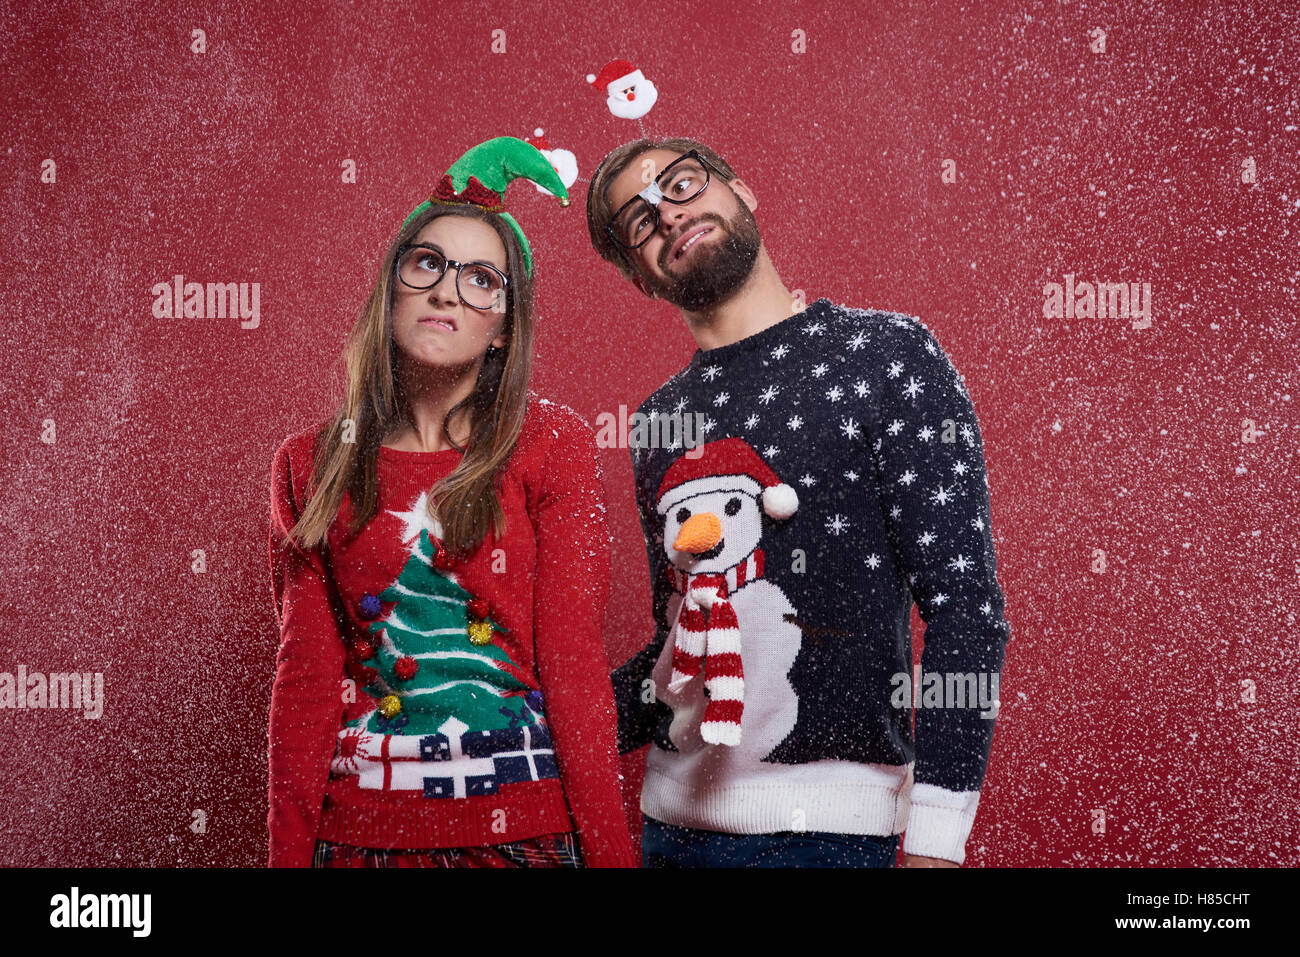 Dissatisfaction from snow in Christmas - Stock Image